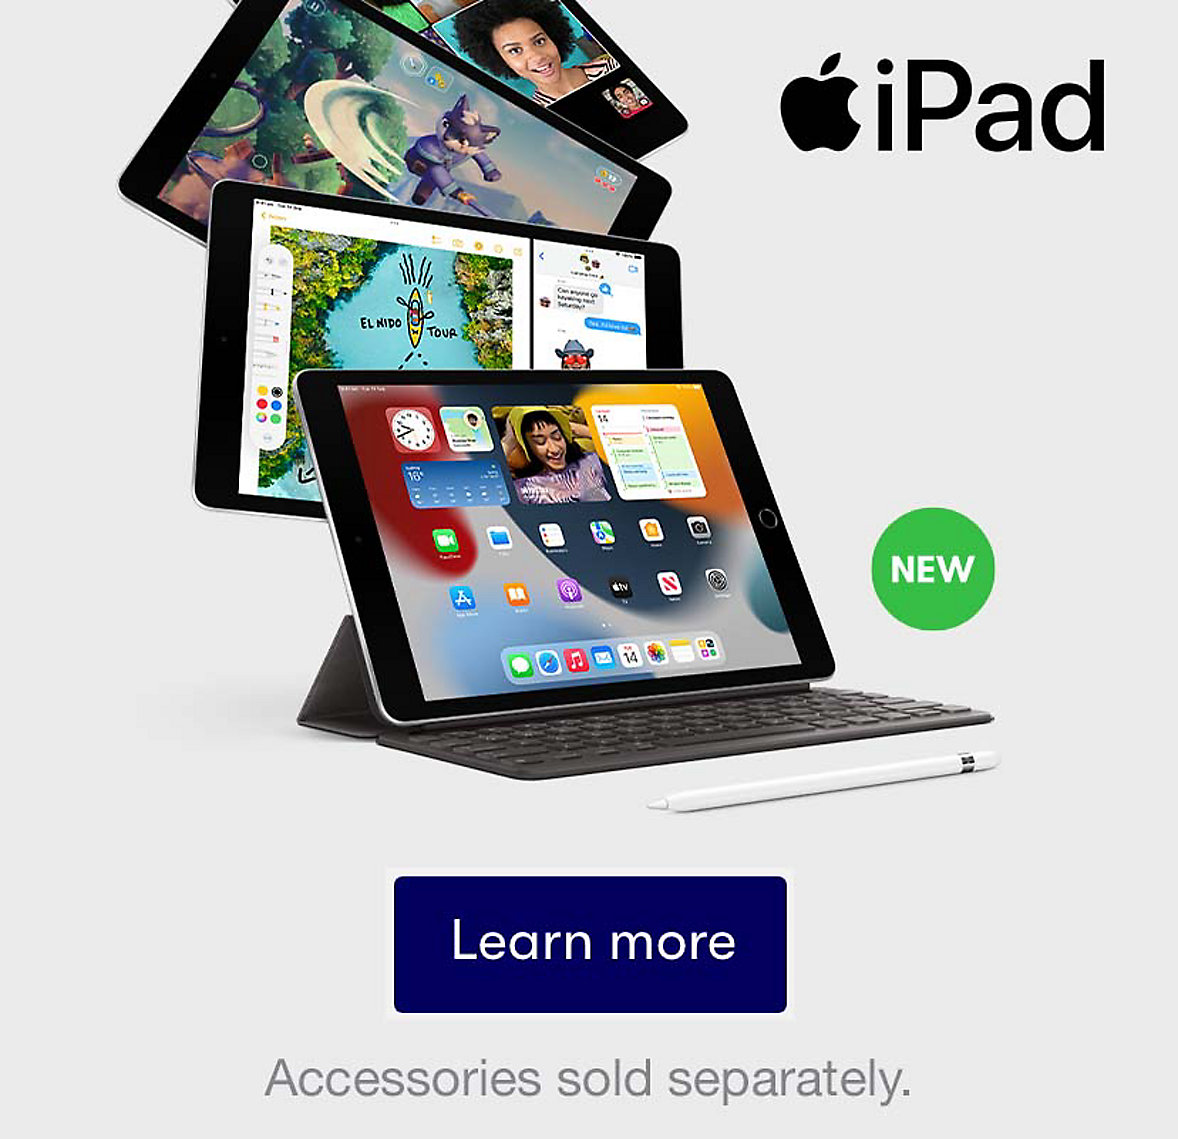 Learn more about iPad